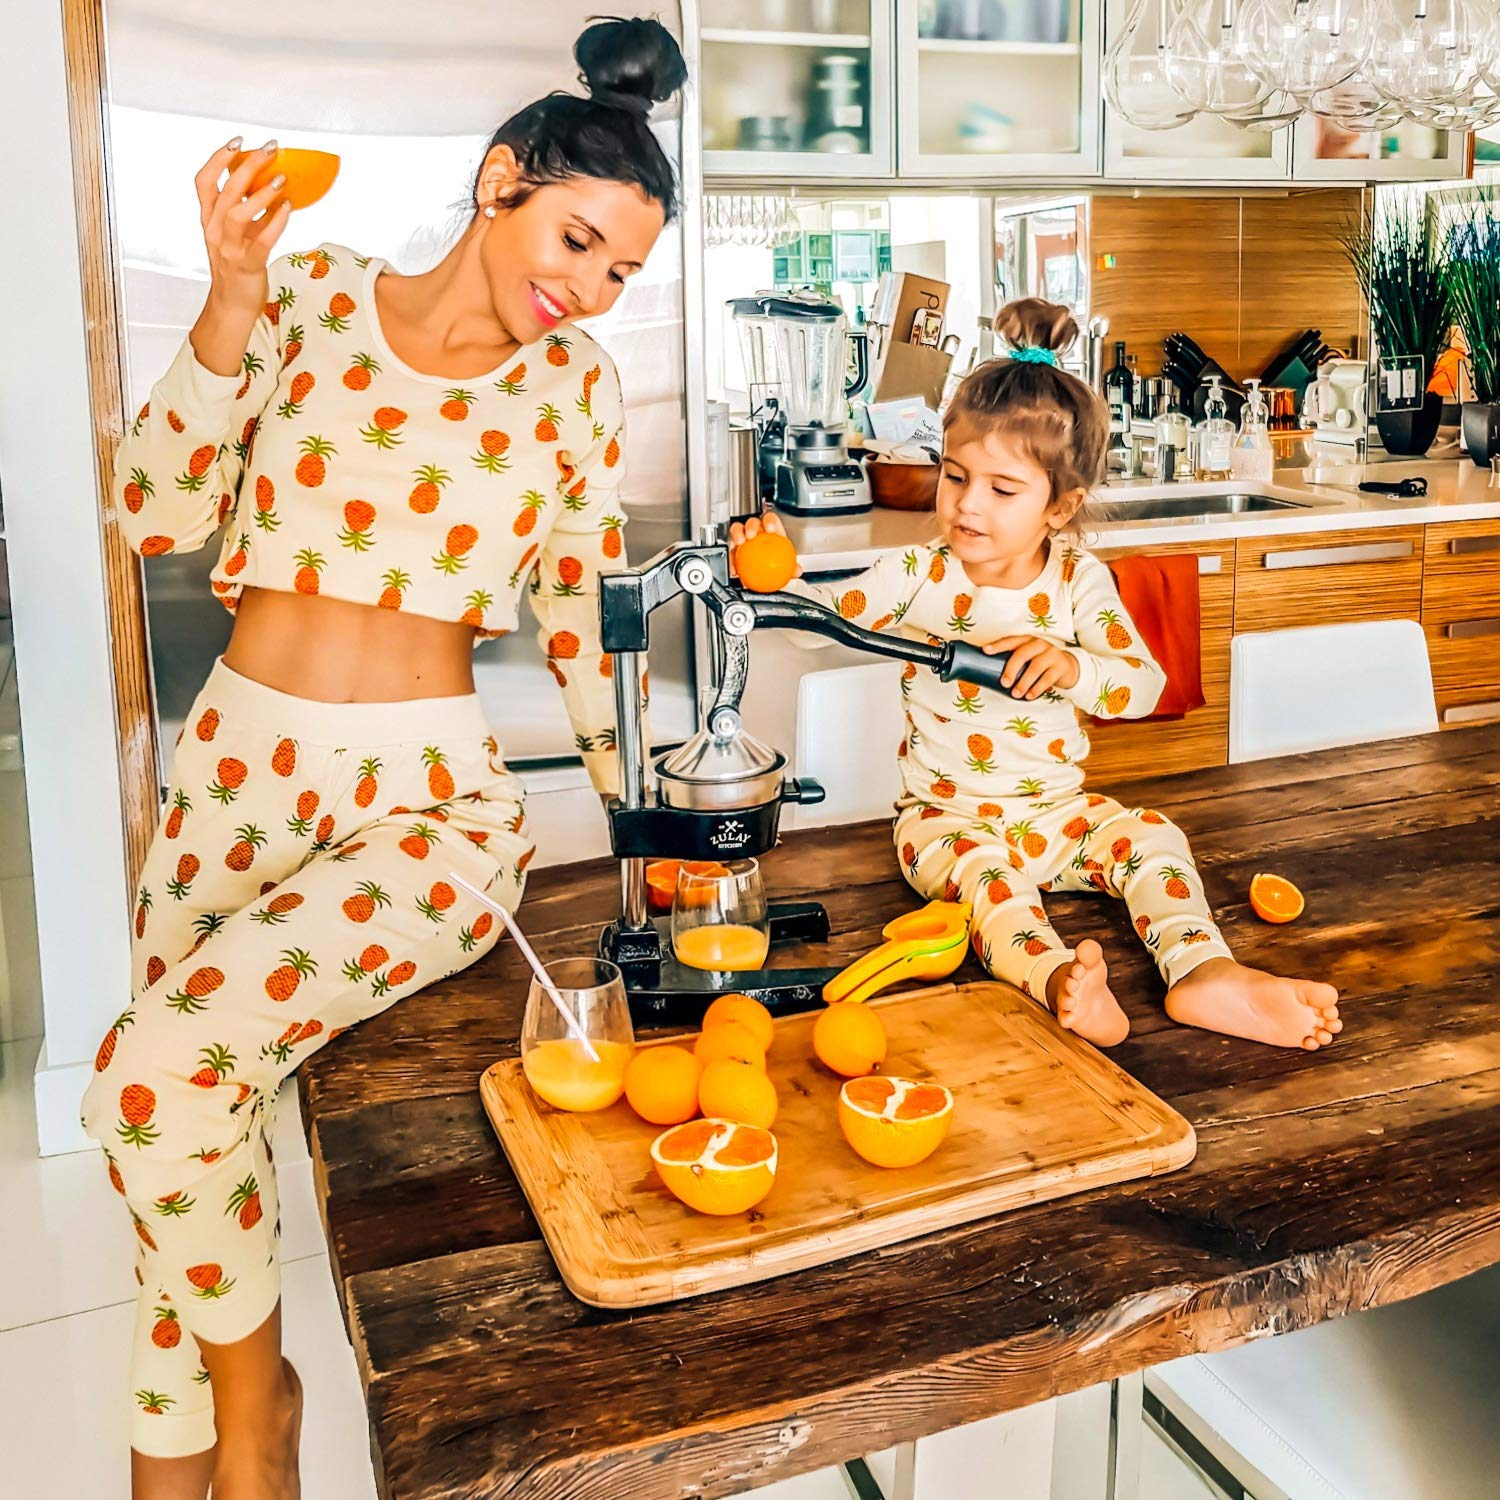 Premium Quality Heavy Duty Manual Orange Juicer and Lime Squeezer Press Stand Zulay Professional Citrus Juicer 2 in 1 Metal Lemon Squeezer COMPLETE SET Manual Citrus Press and Orange Squeezer